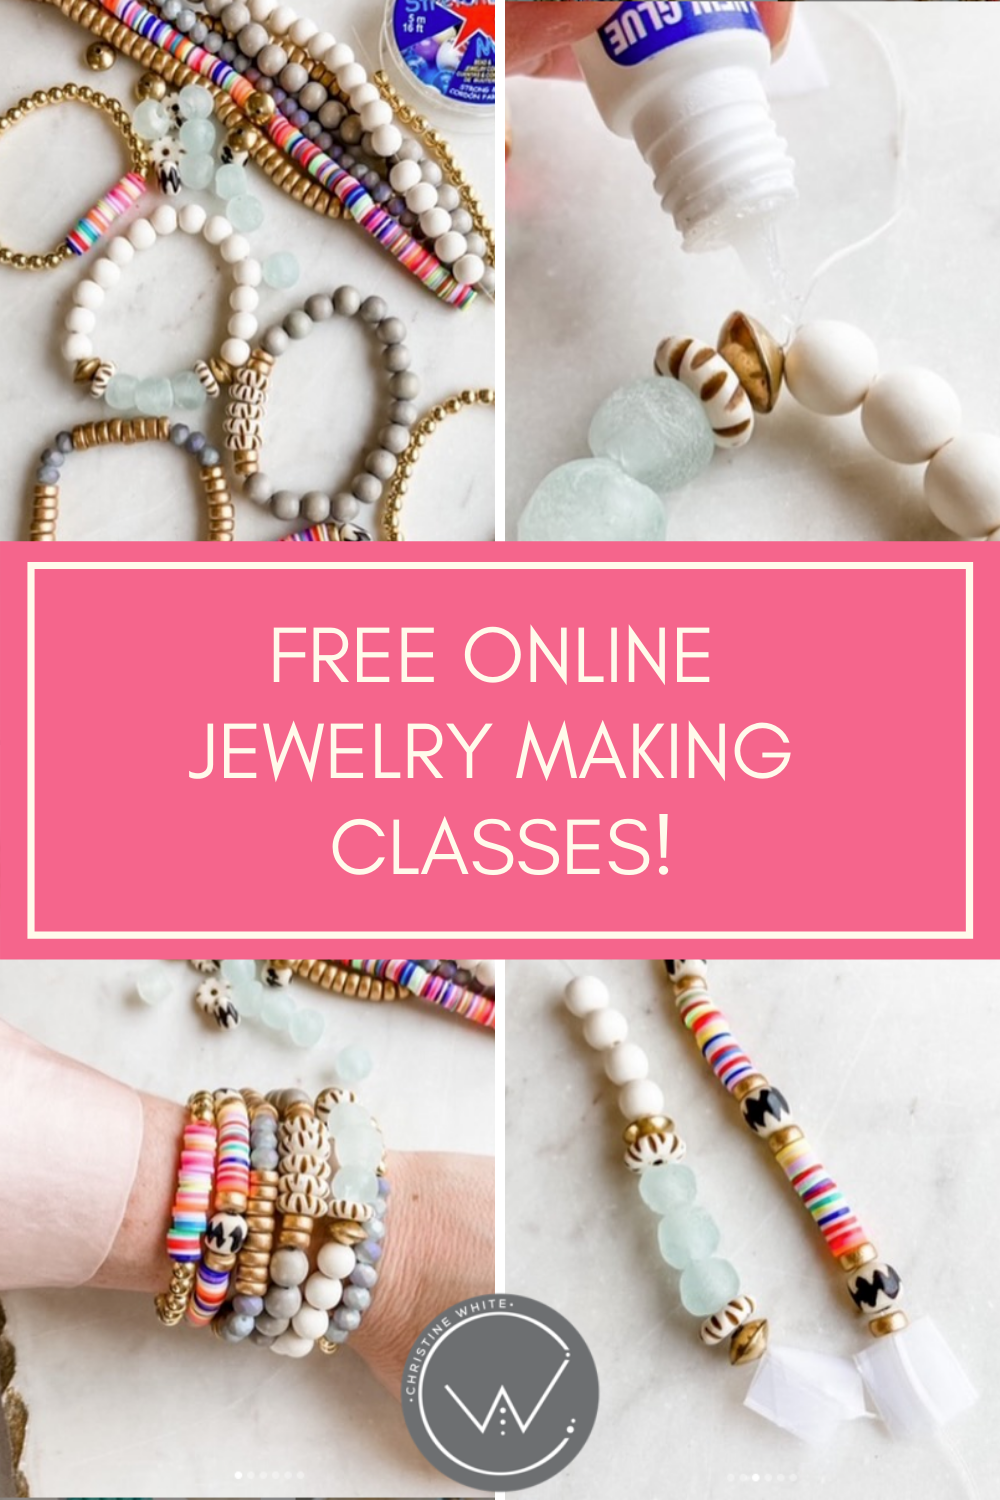 37+ How to get free jewelry online ideas